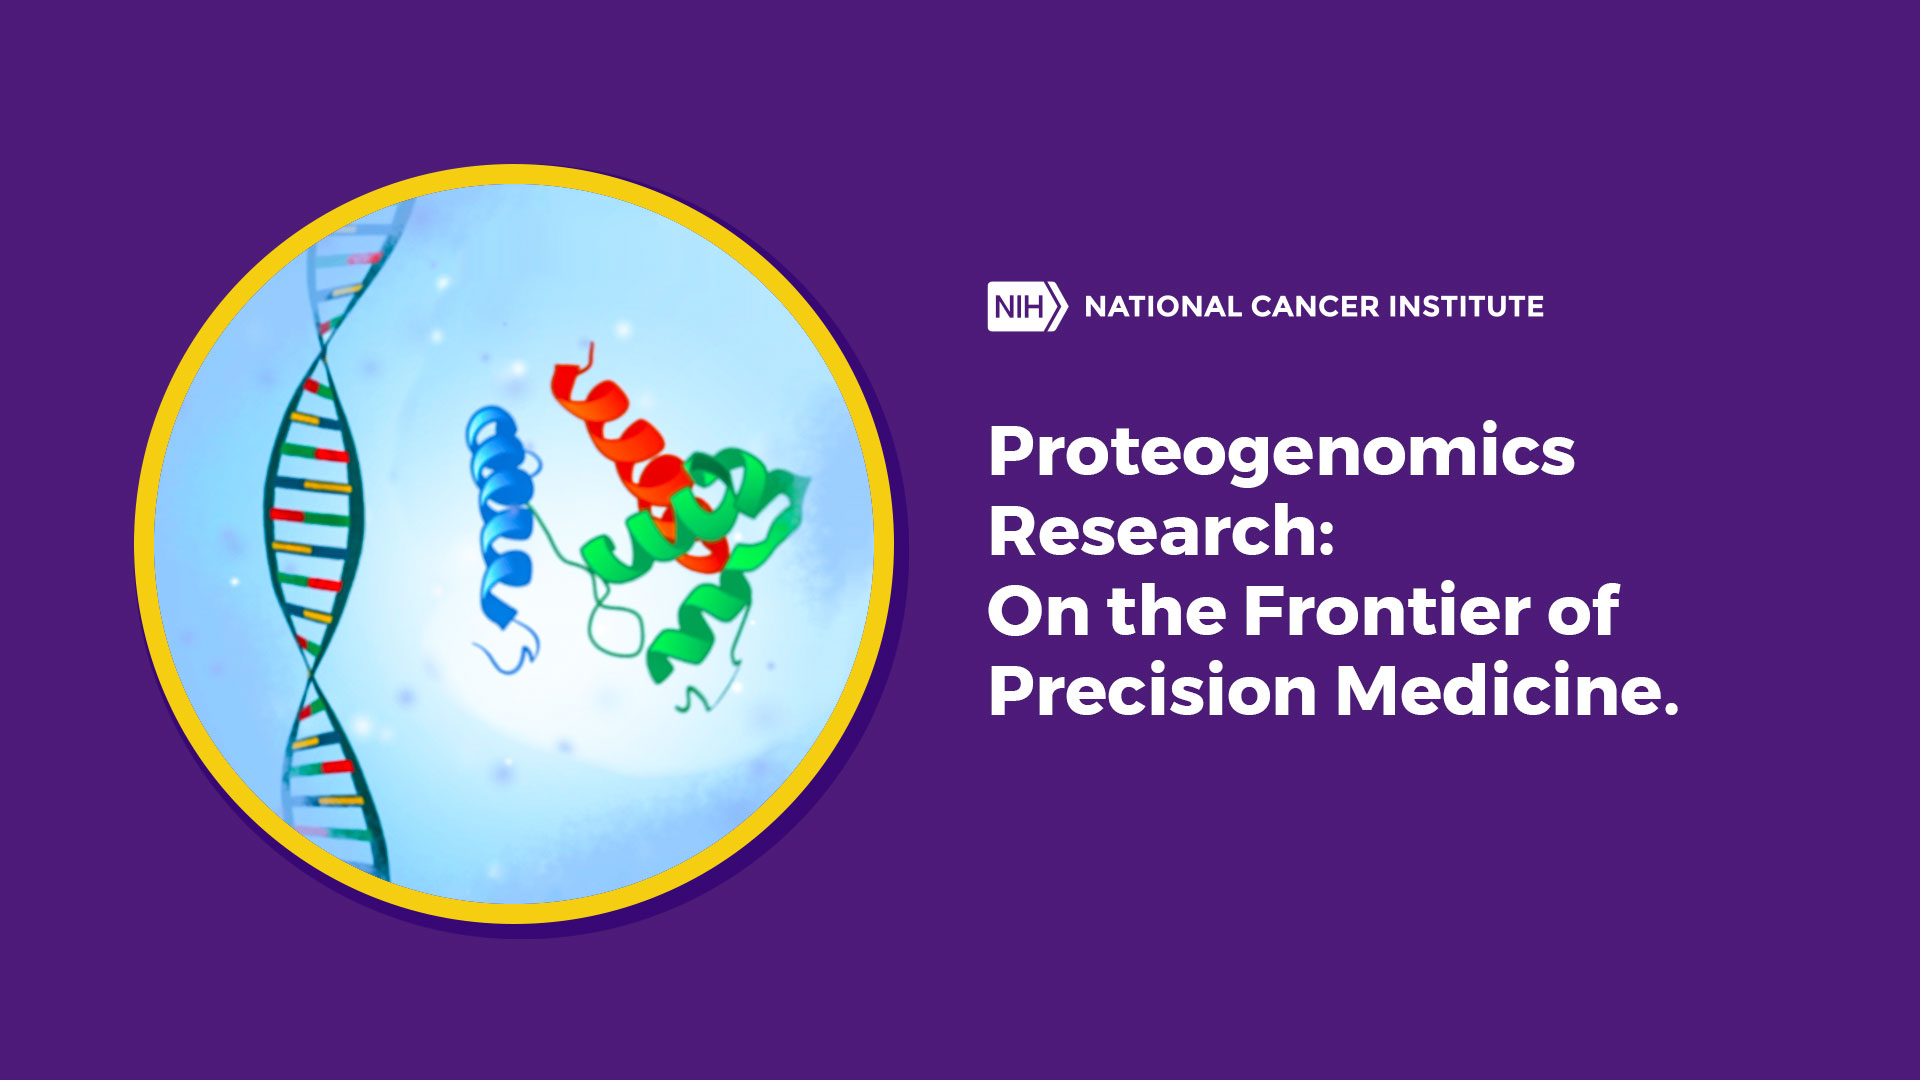 Preoteogenomics Research – On the Frontier of Precision Medicine